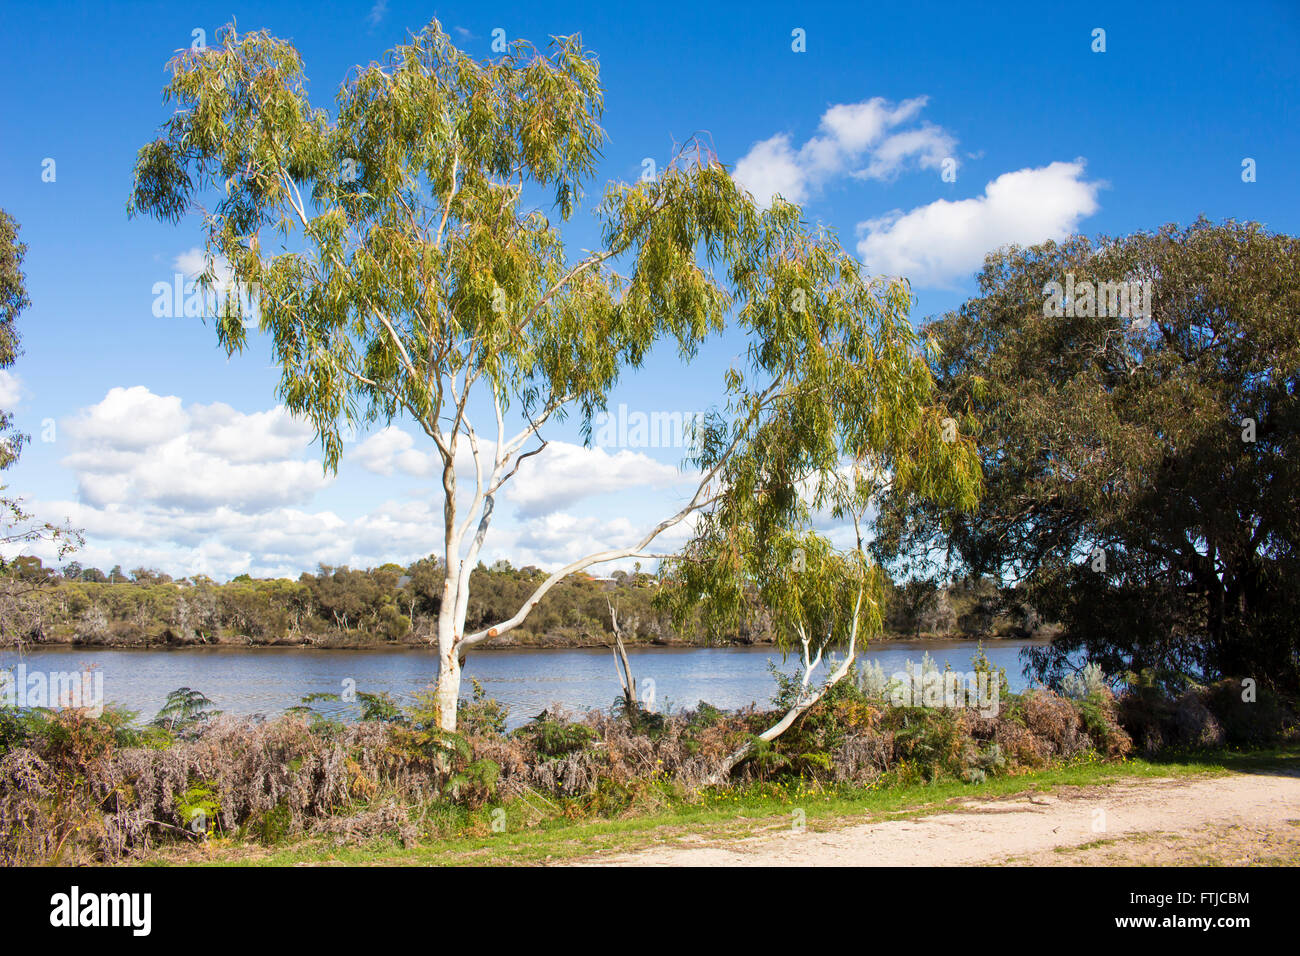 Landscapes along the south bank - Eucalypt Trees Growing Along The Banks Of The Collie River Near Australind South Western